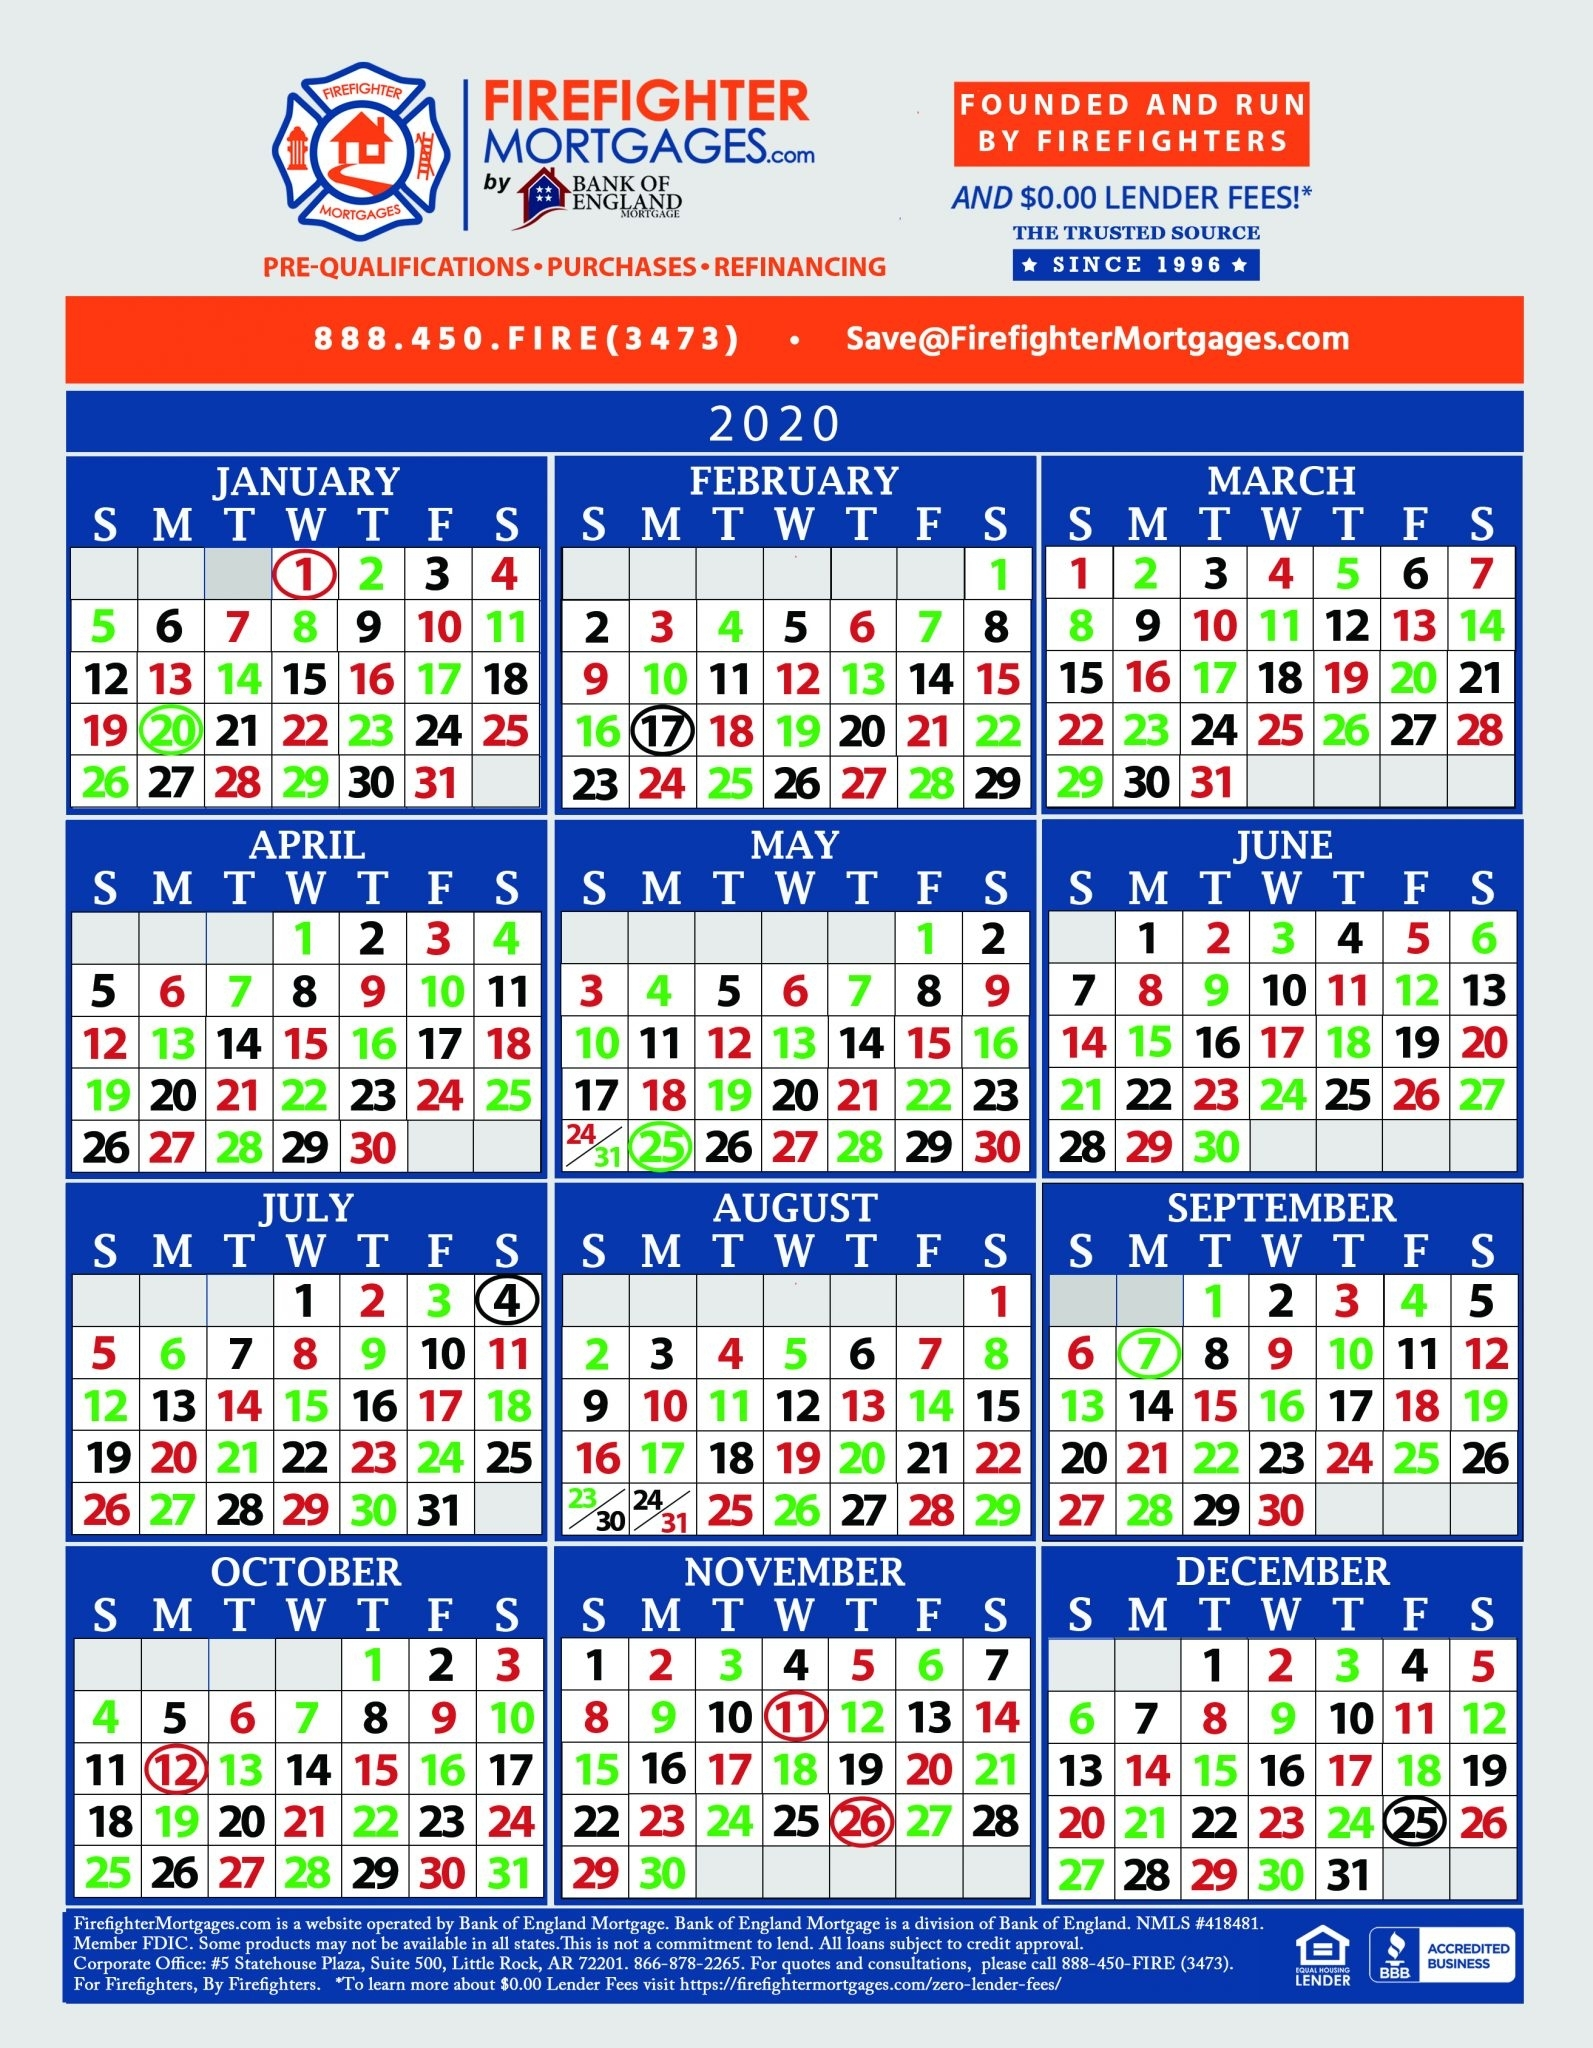 Firefighter Shift Calendars - Firefighter Mortgages® pertaining to Firefighter 24 48 Shift 2020 Calendar